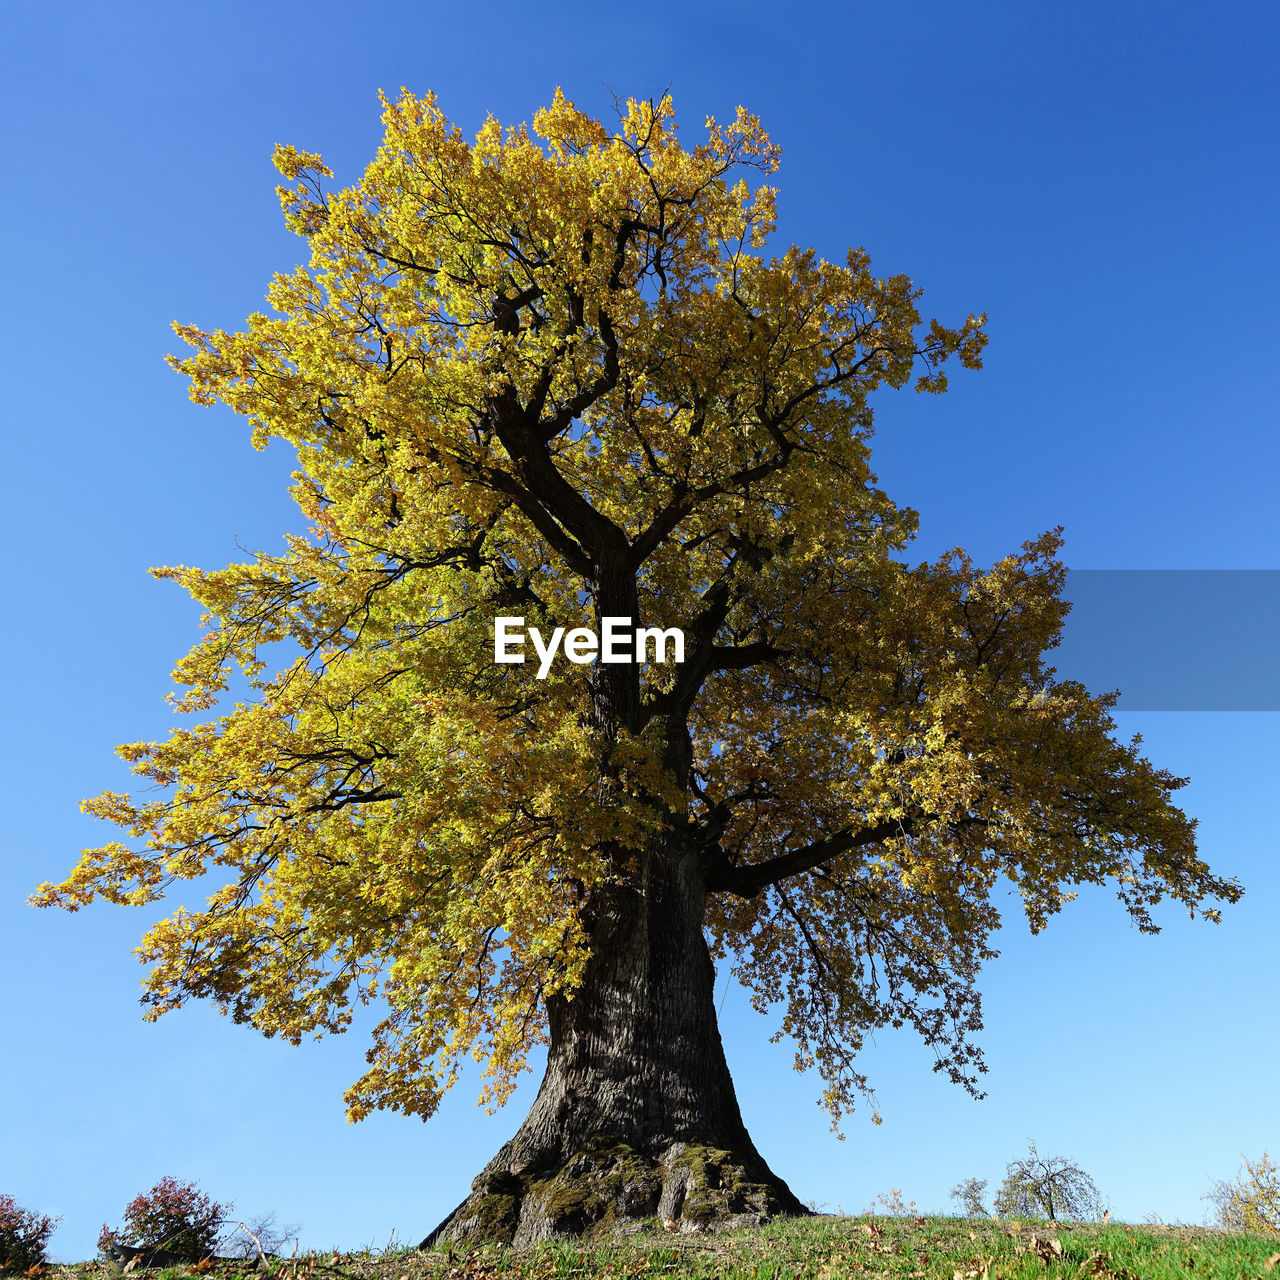 tree, plant, sky, low angle view, growth, beauty in nature, clear sky, nature, branch, autumn, no people, day, tranquility, outdoors, change, tree trunk, blue, trunk, sunlight, leaf